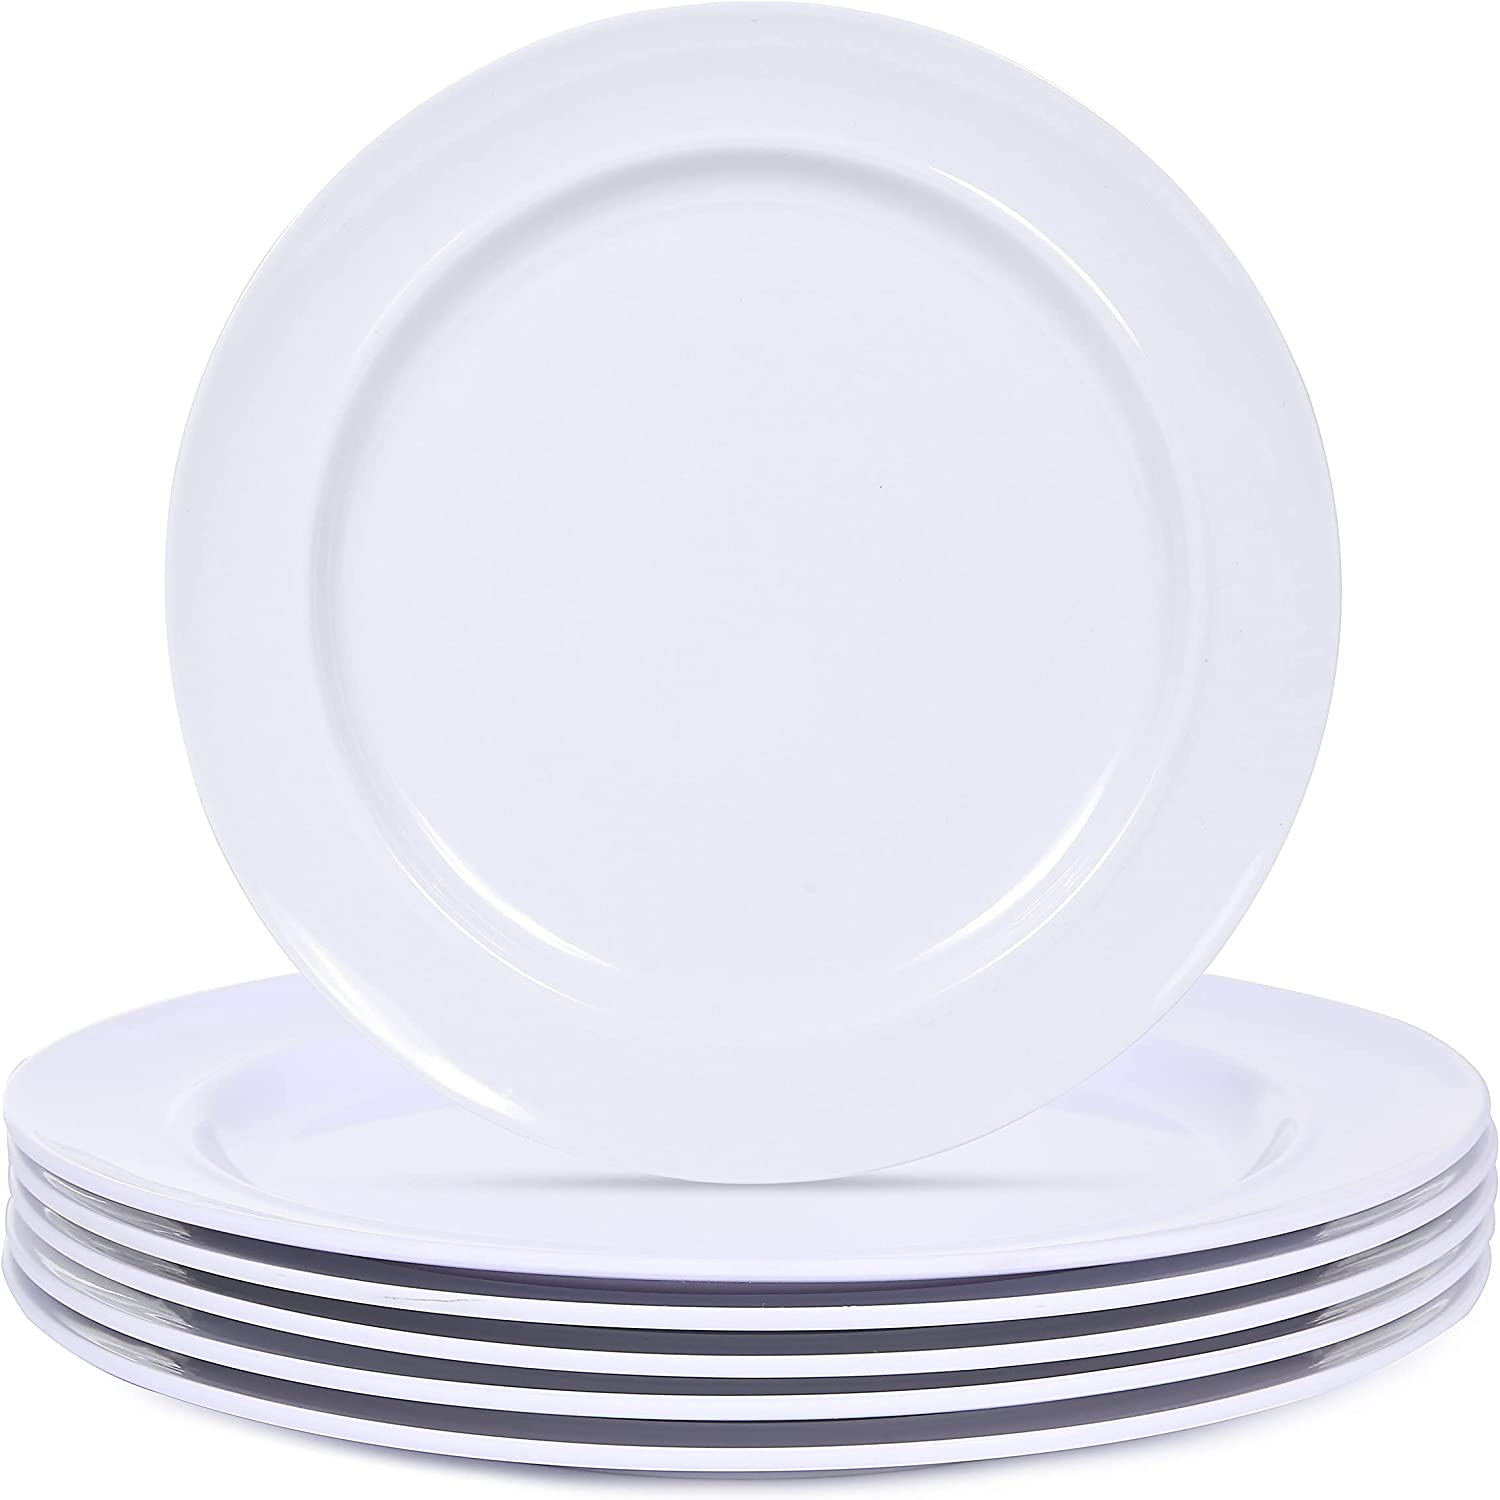 Melamine Max 43% SEAL limited product OFF Dinner Plates 11inch White Set RV Camper Dishe